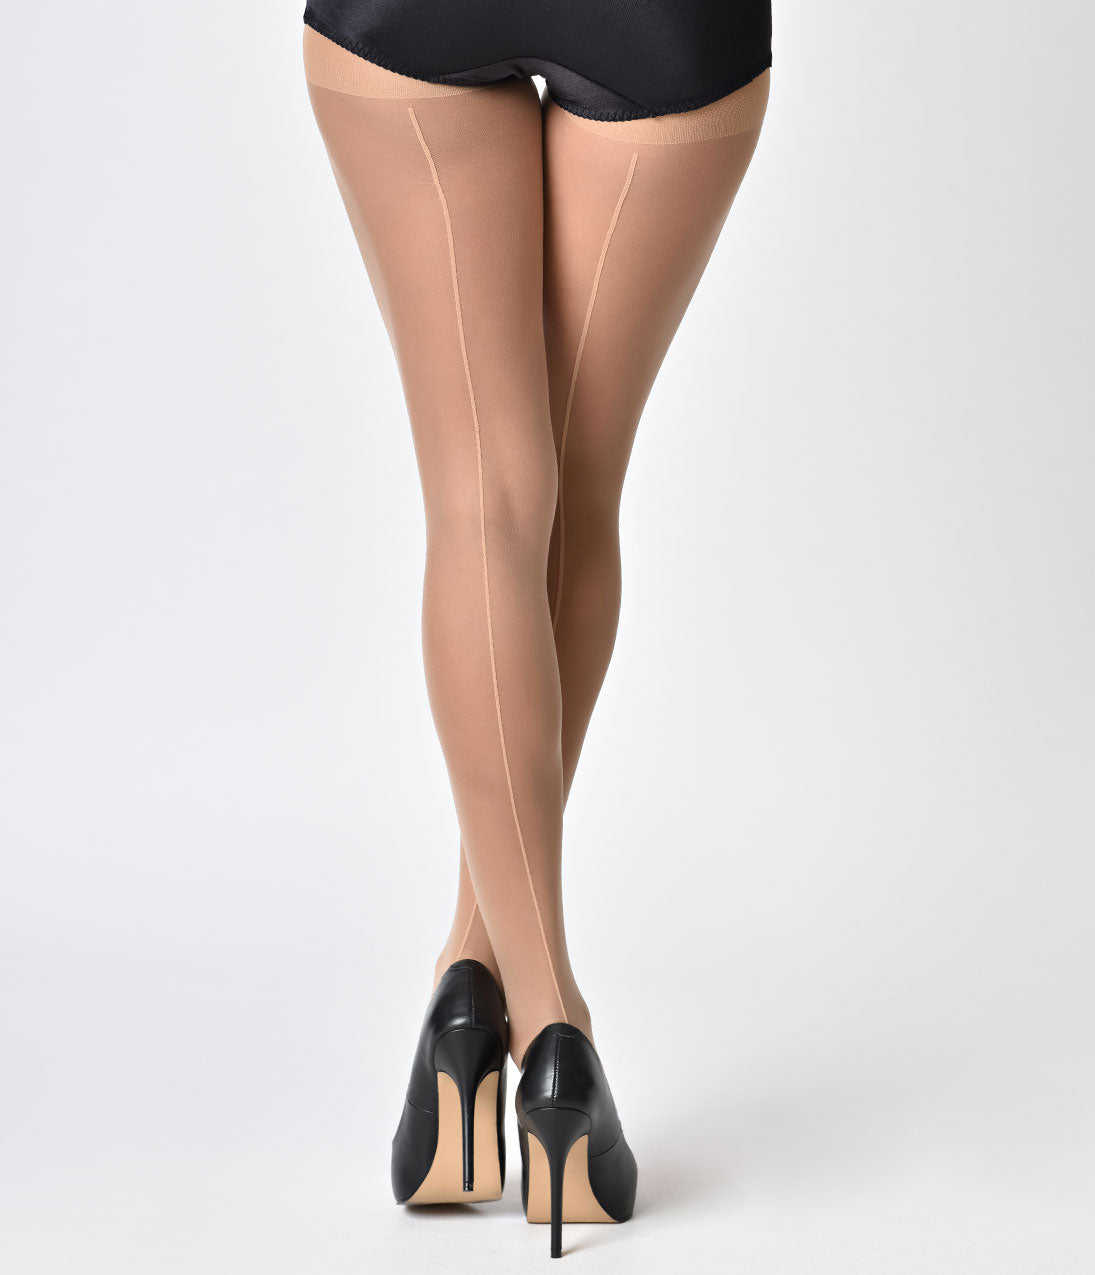 Seamed Stockings, Nylons, Tights Nude Sheer Backseam Pantyhose $12.00 AT vintagedancer.com